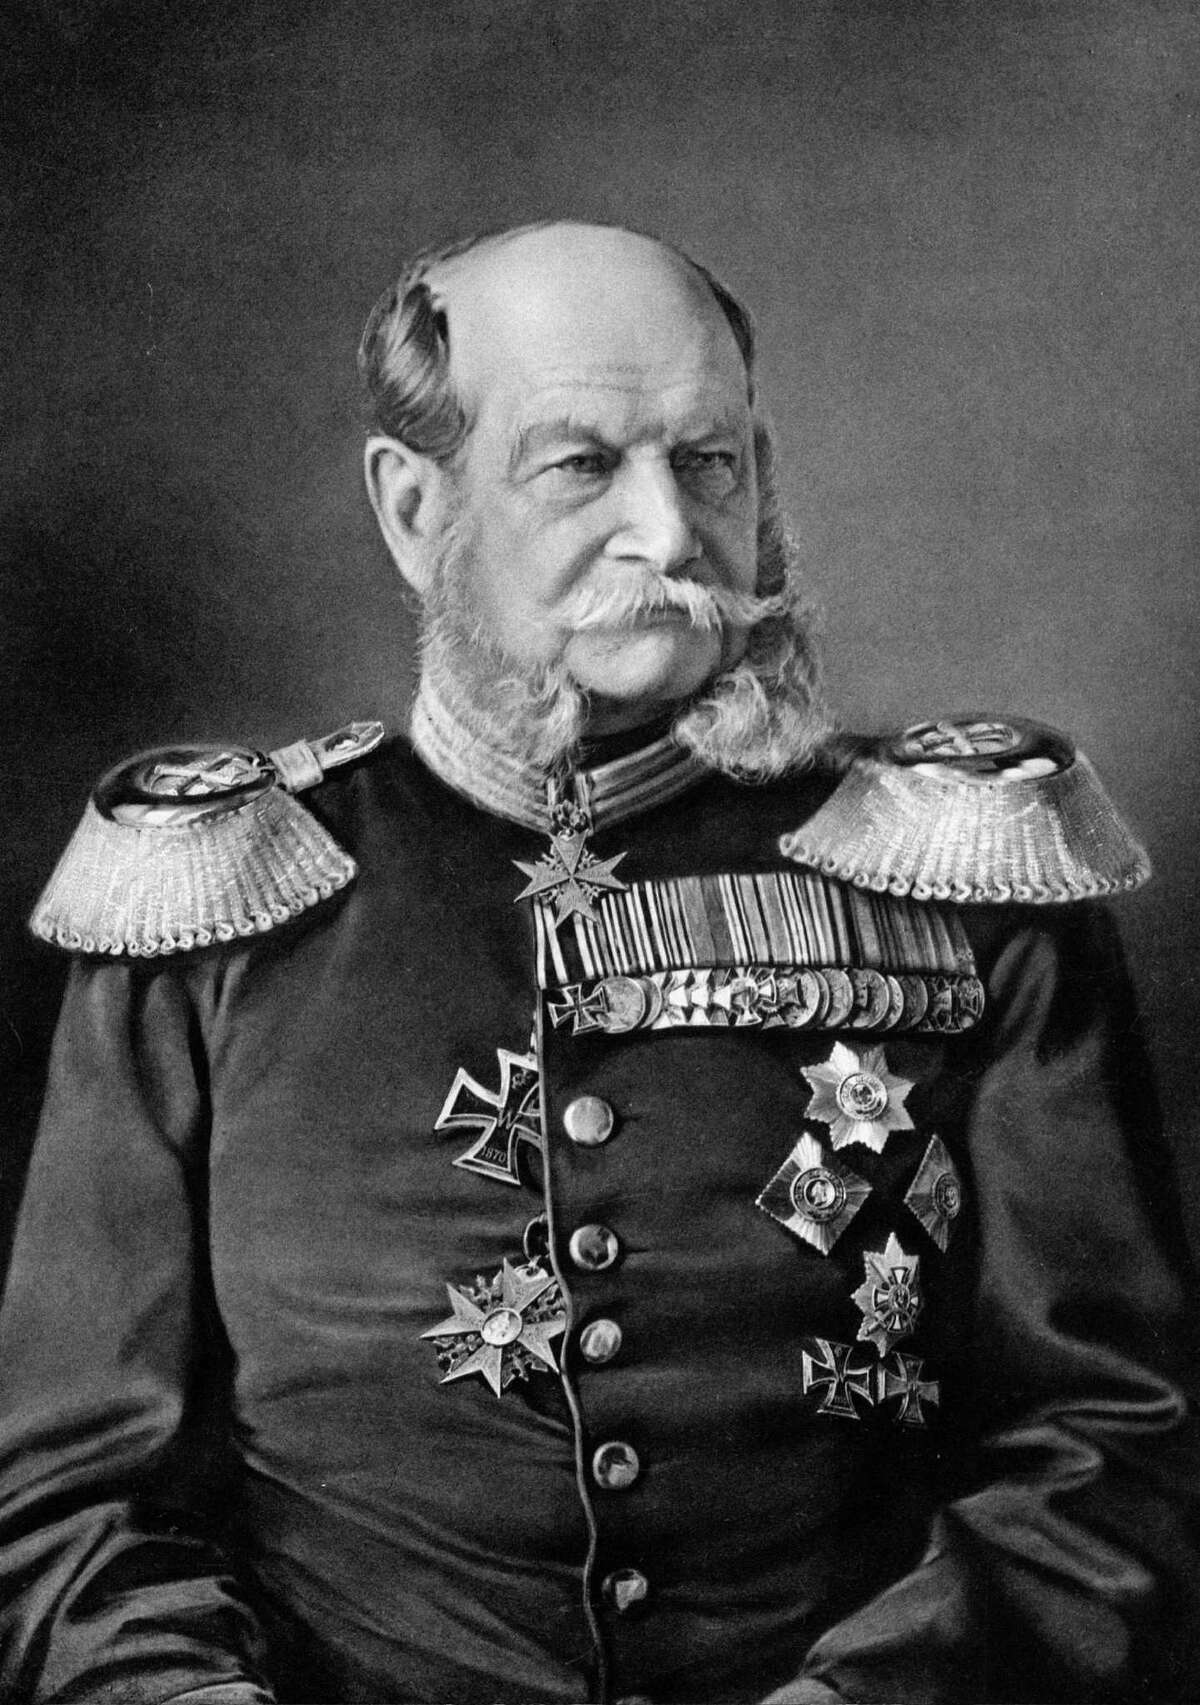 3. The area developed as the King William district when Ernst Altgel, a German immigrant who later became a businessman in San Antonio, named its main street after King Wilhelm I (pictured above), the king of Prussia in the 1870, according to the Texas State Historical Association.